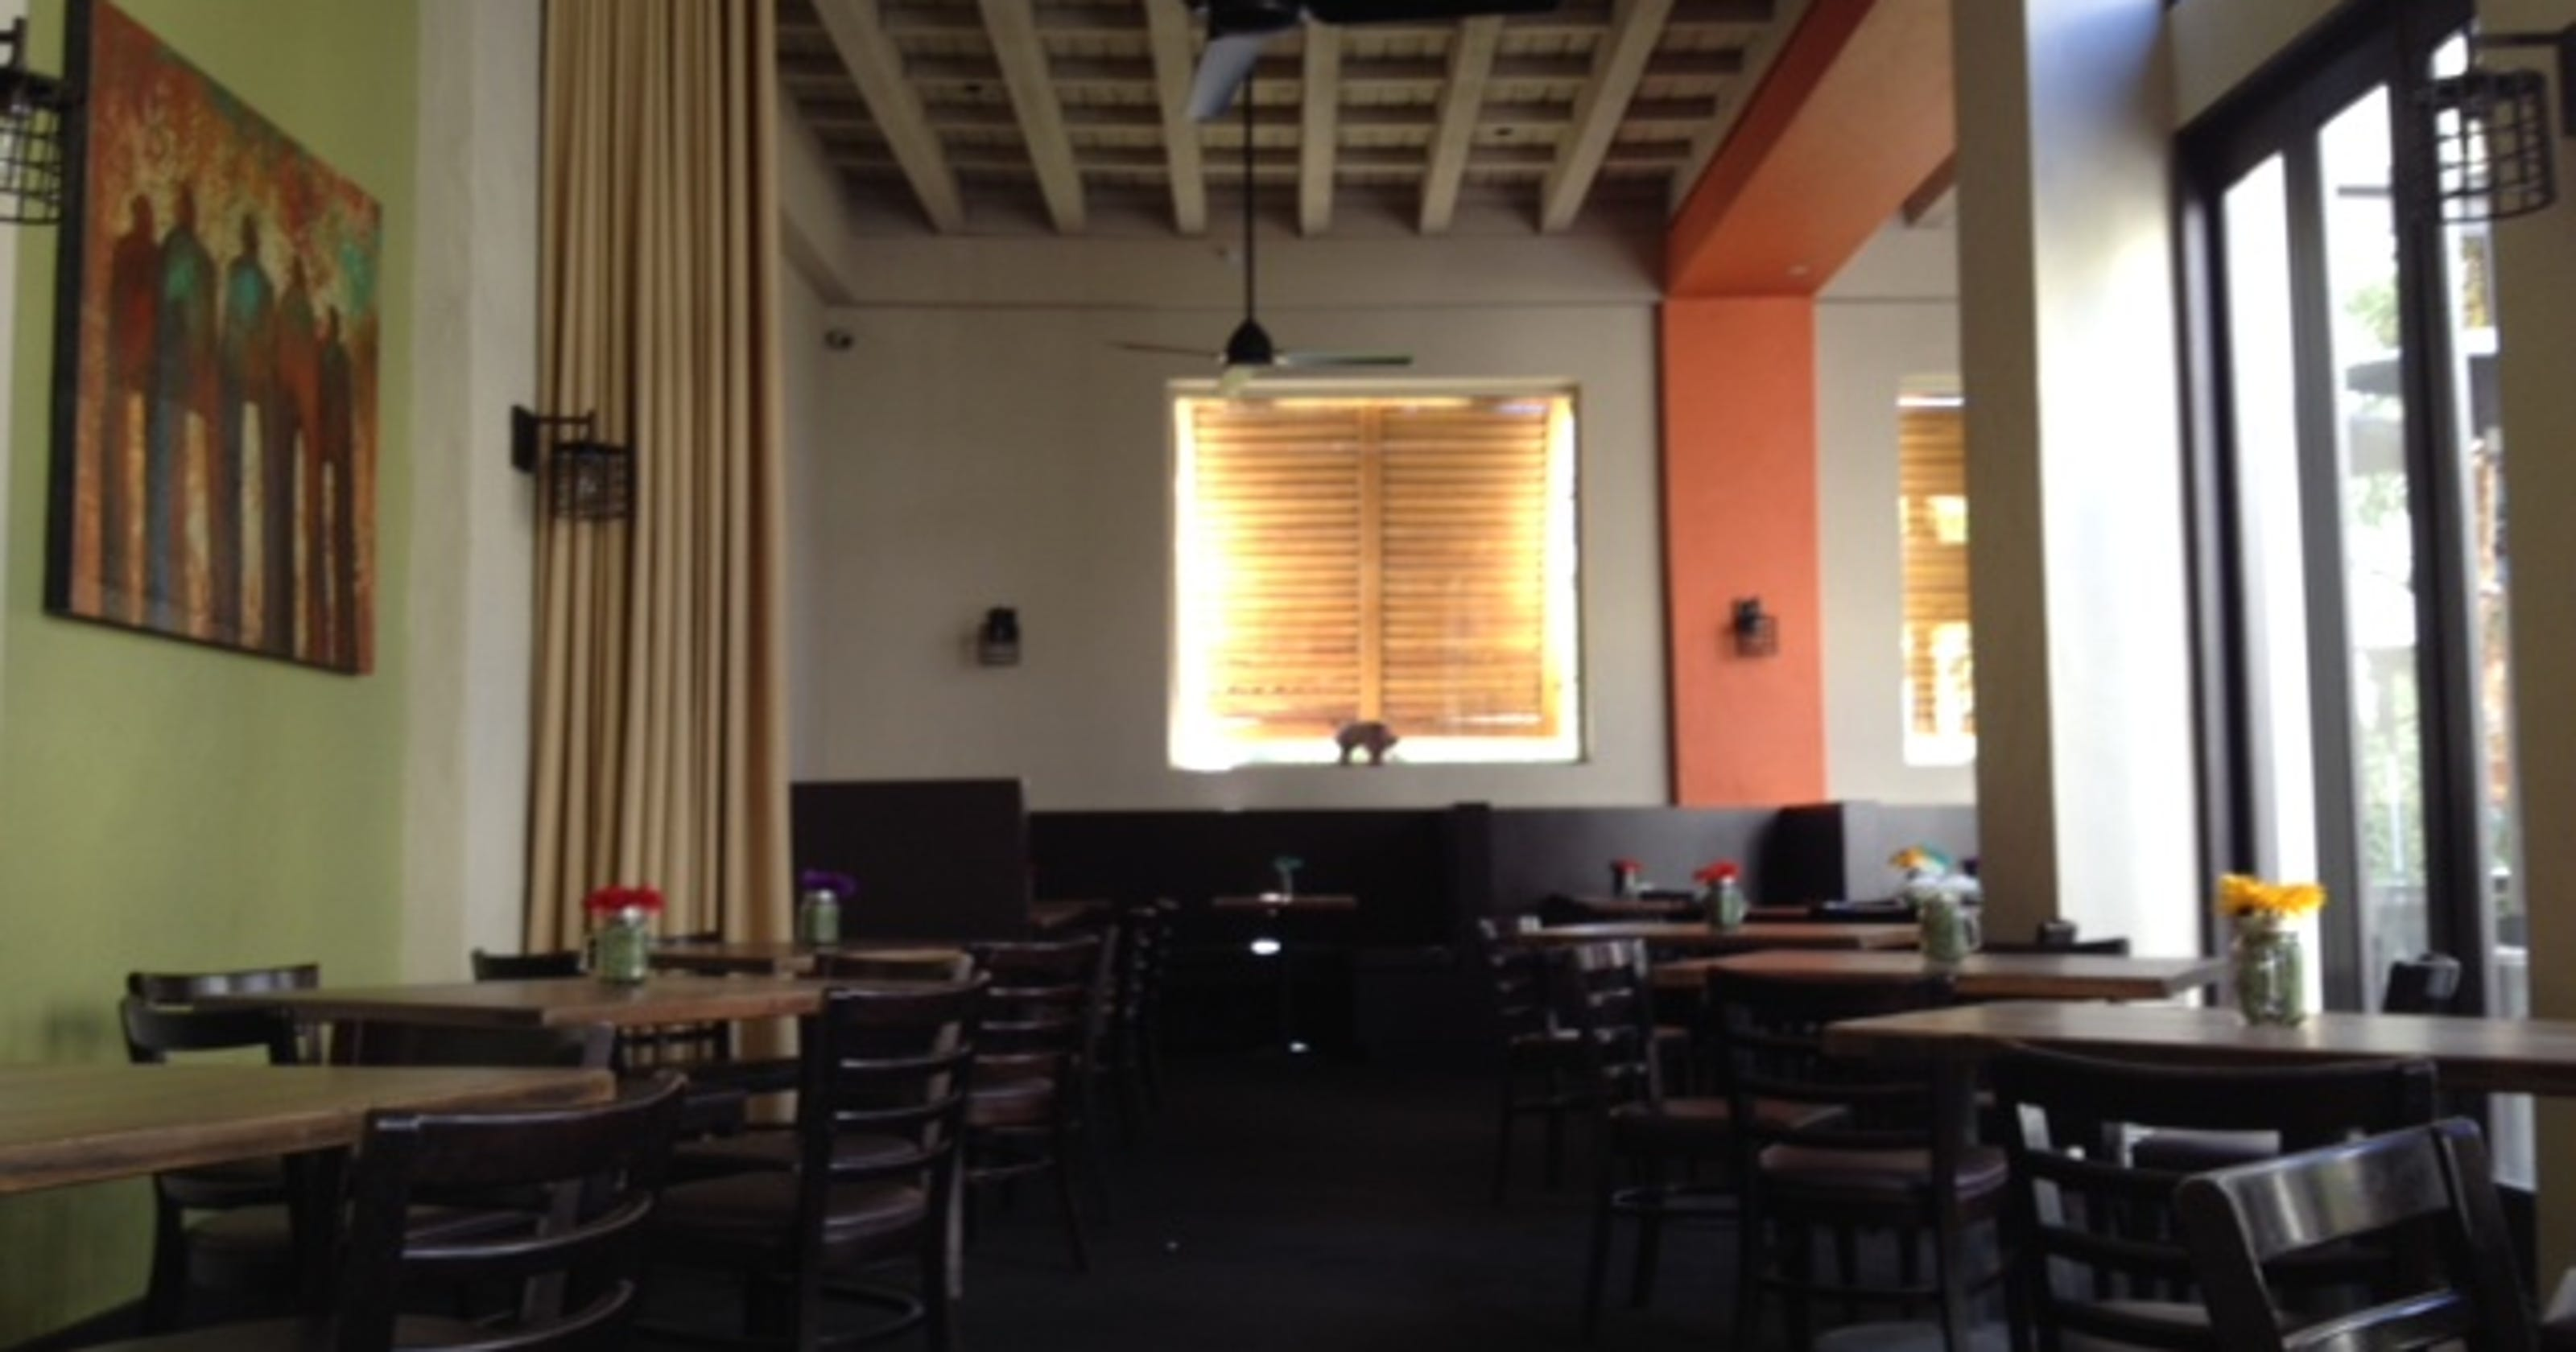 ee38c924dc Catalan restaurant in Rancho Mirage to reopen with new look and menu